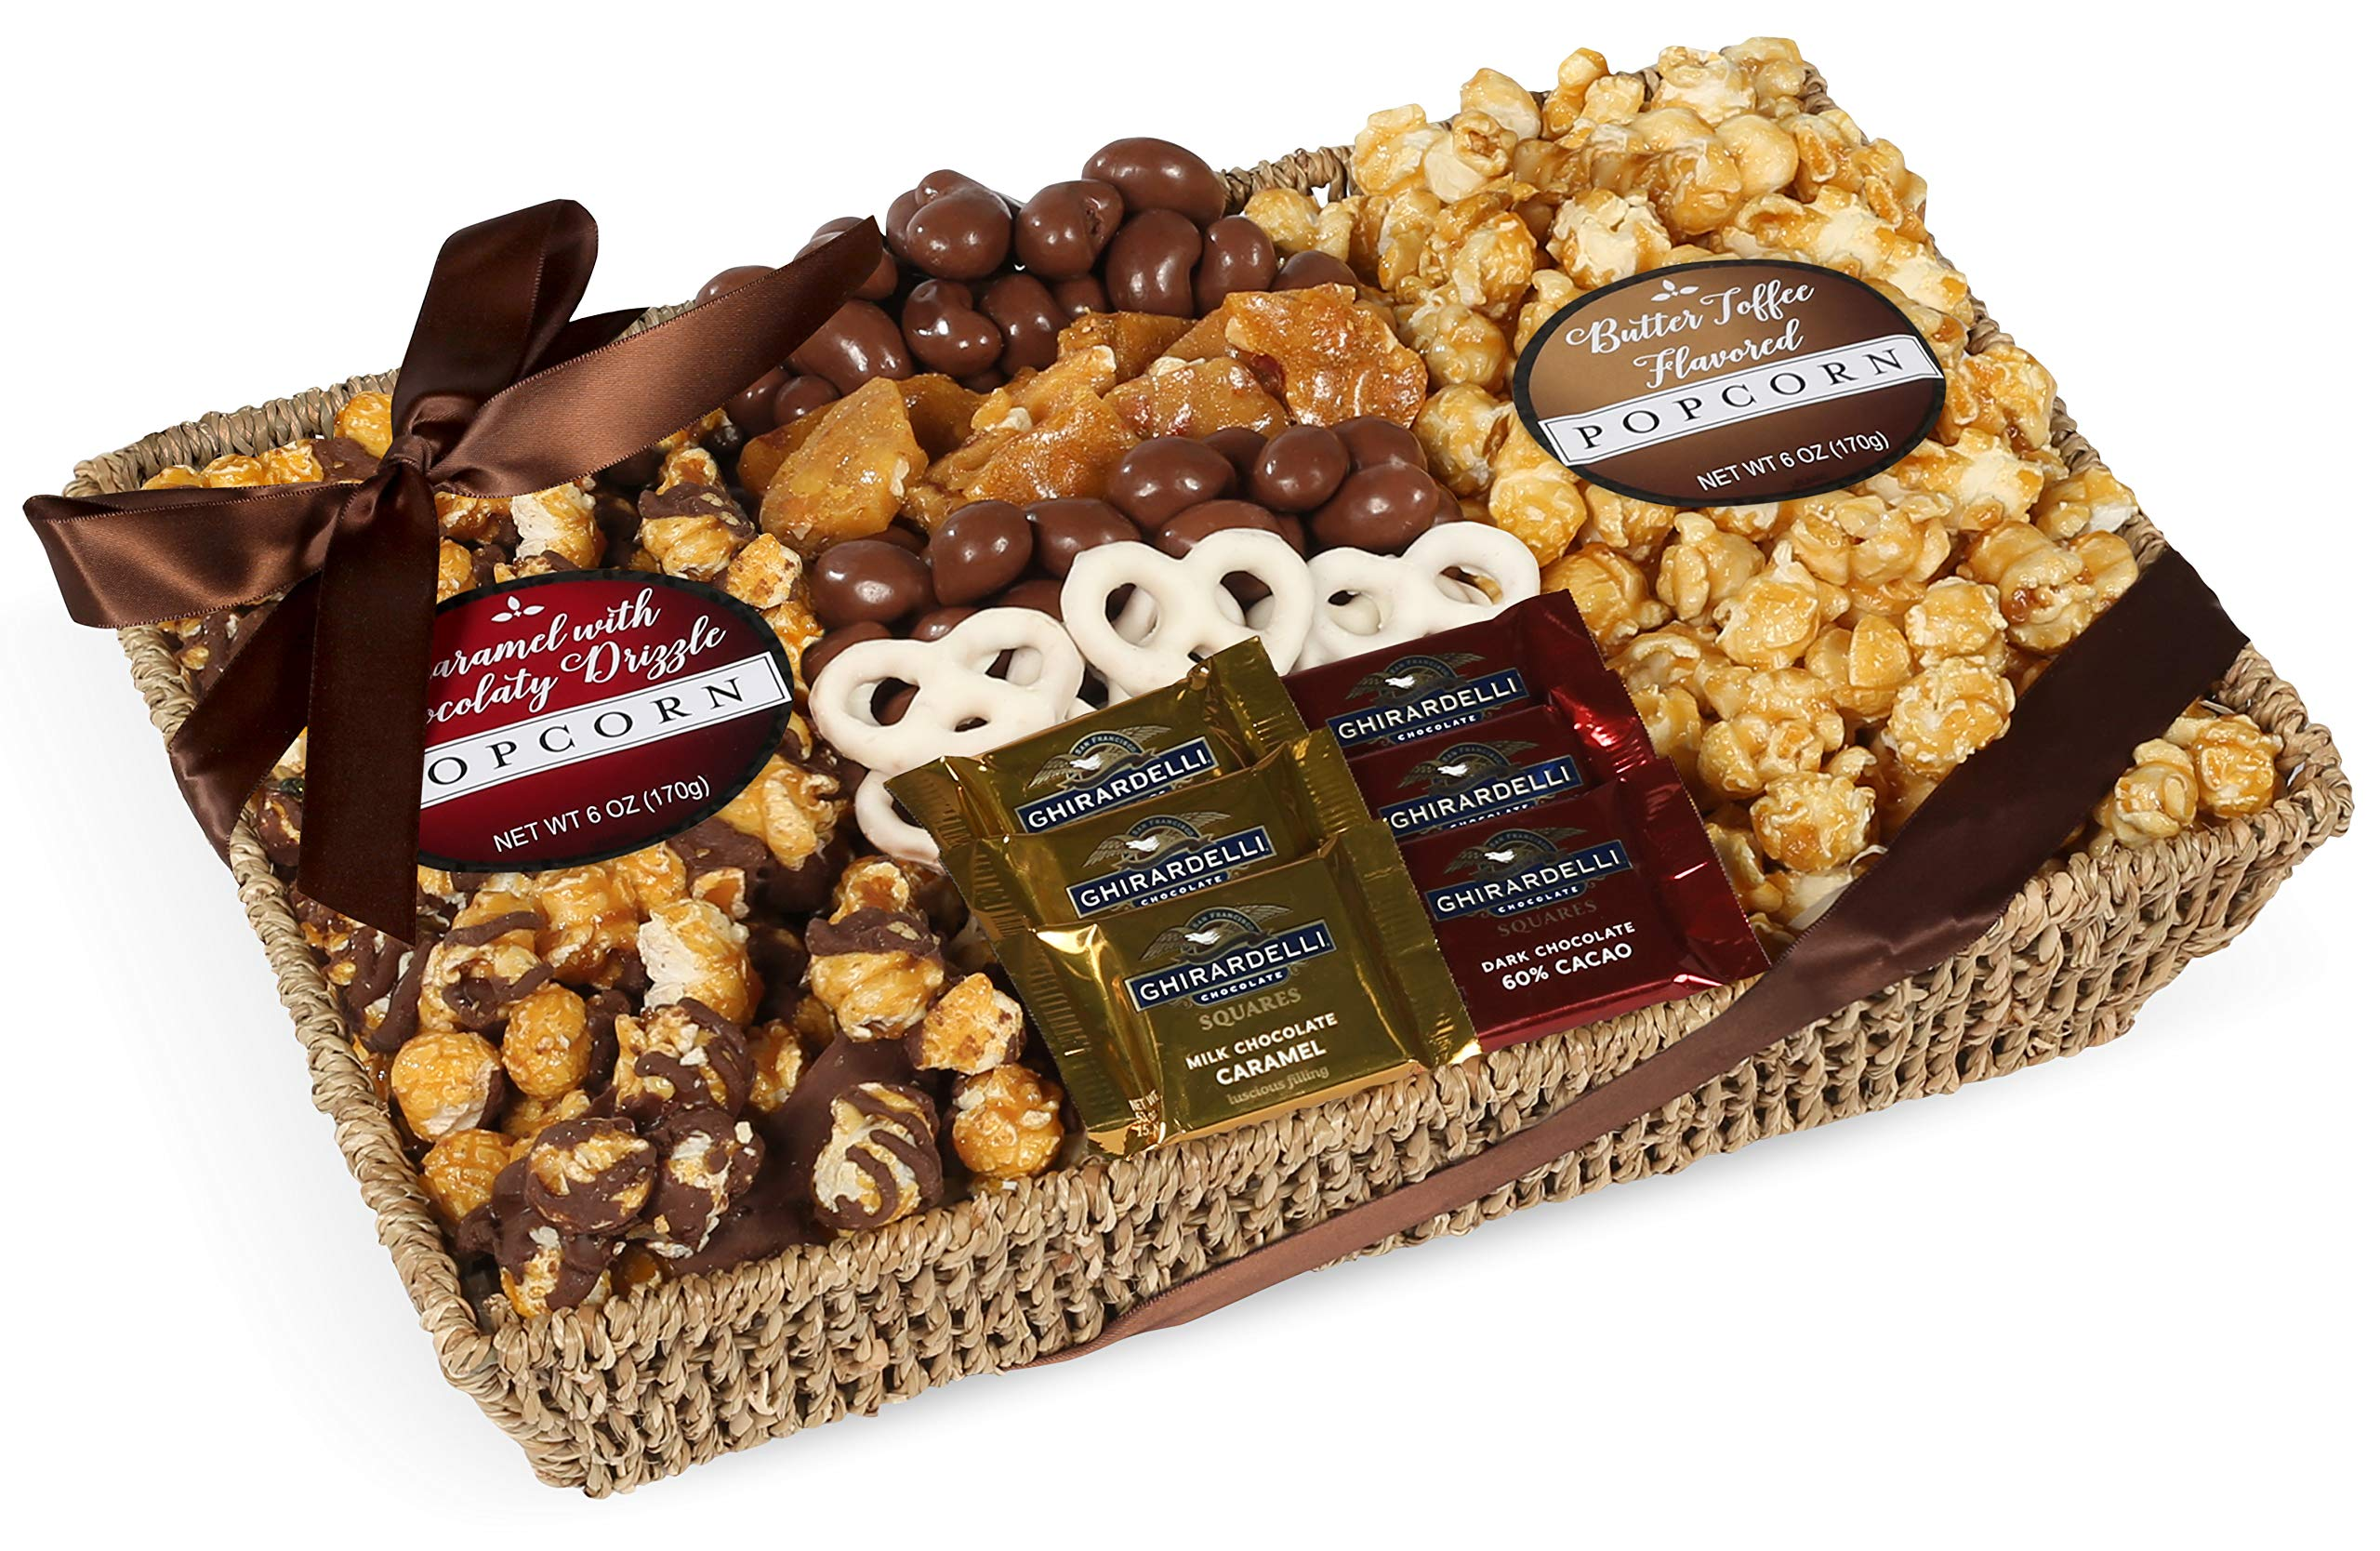 Chocolate, Caramel and Crunch Grand Gift Basket Tray With Protective Packaging, Damage Free Guarantee. by Milliard